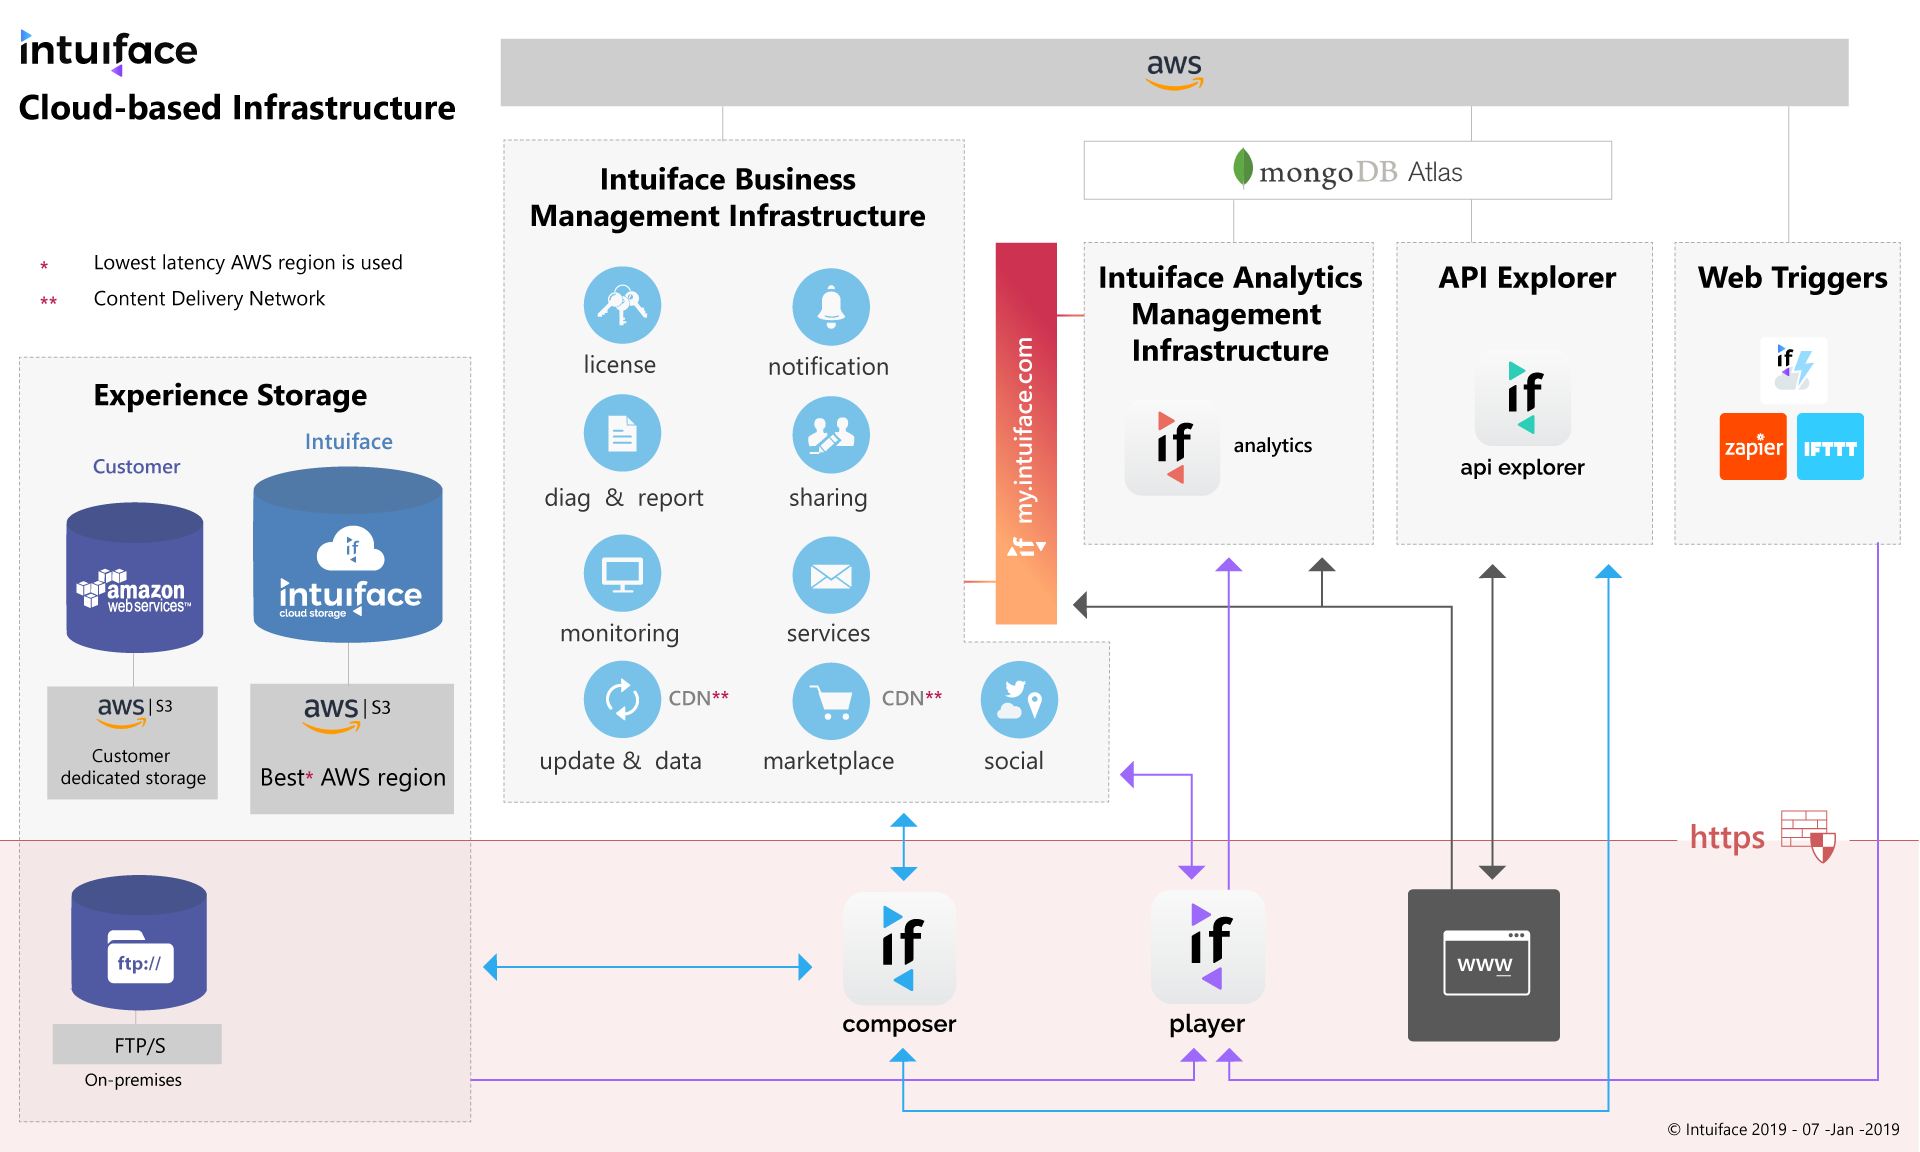 The Intuiface Cloud-based Infrastructure